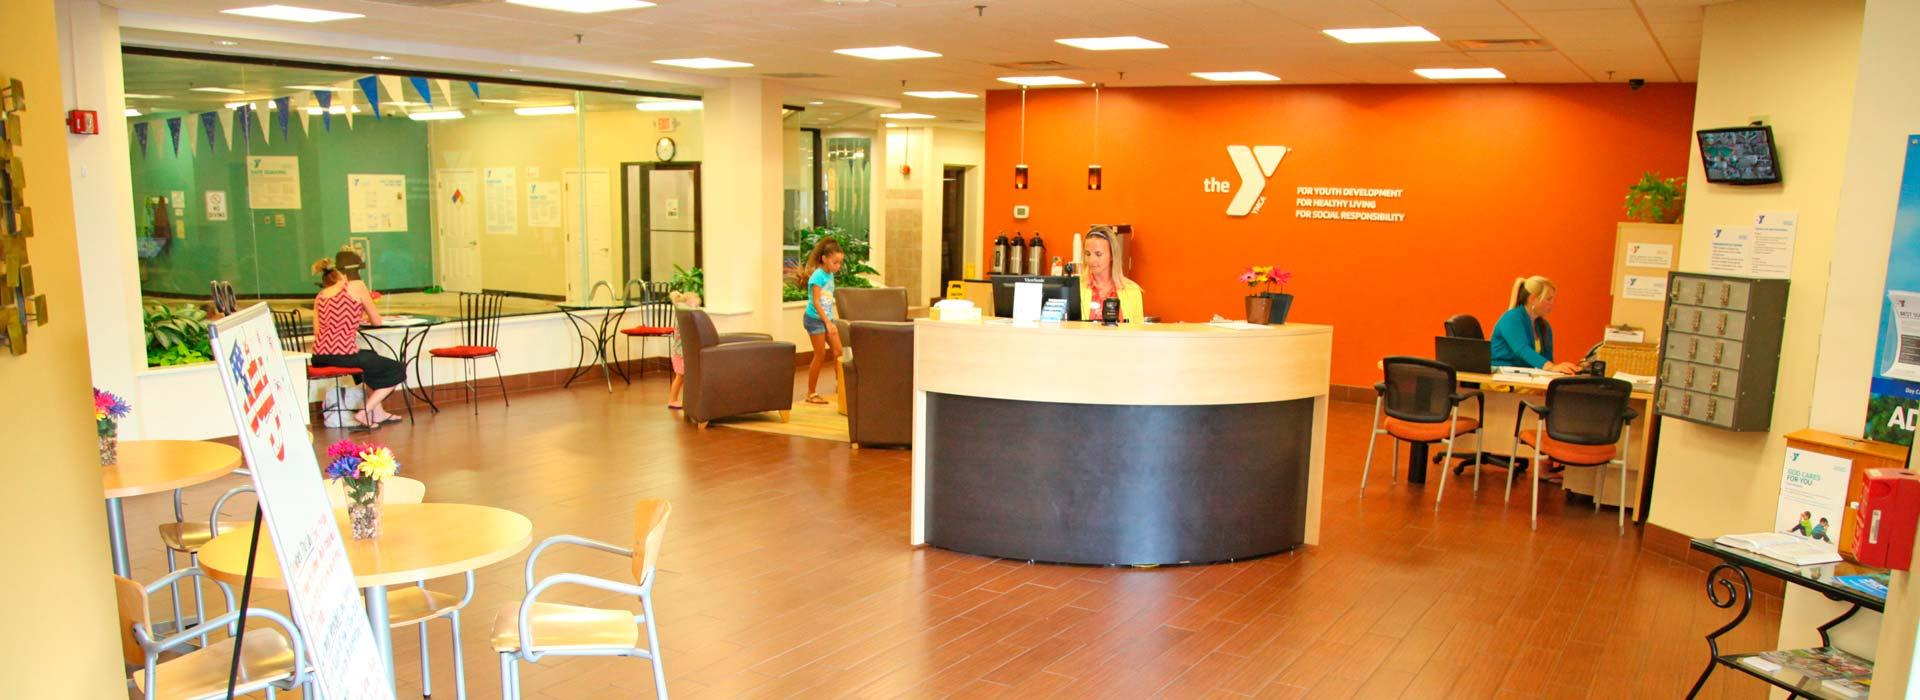 Indian River Family YMCA Lobby